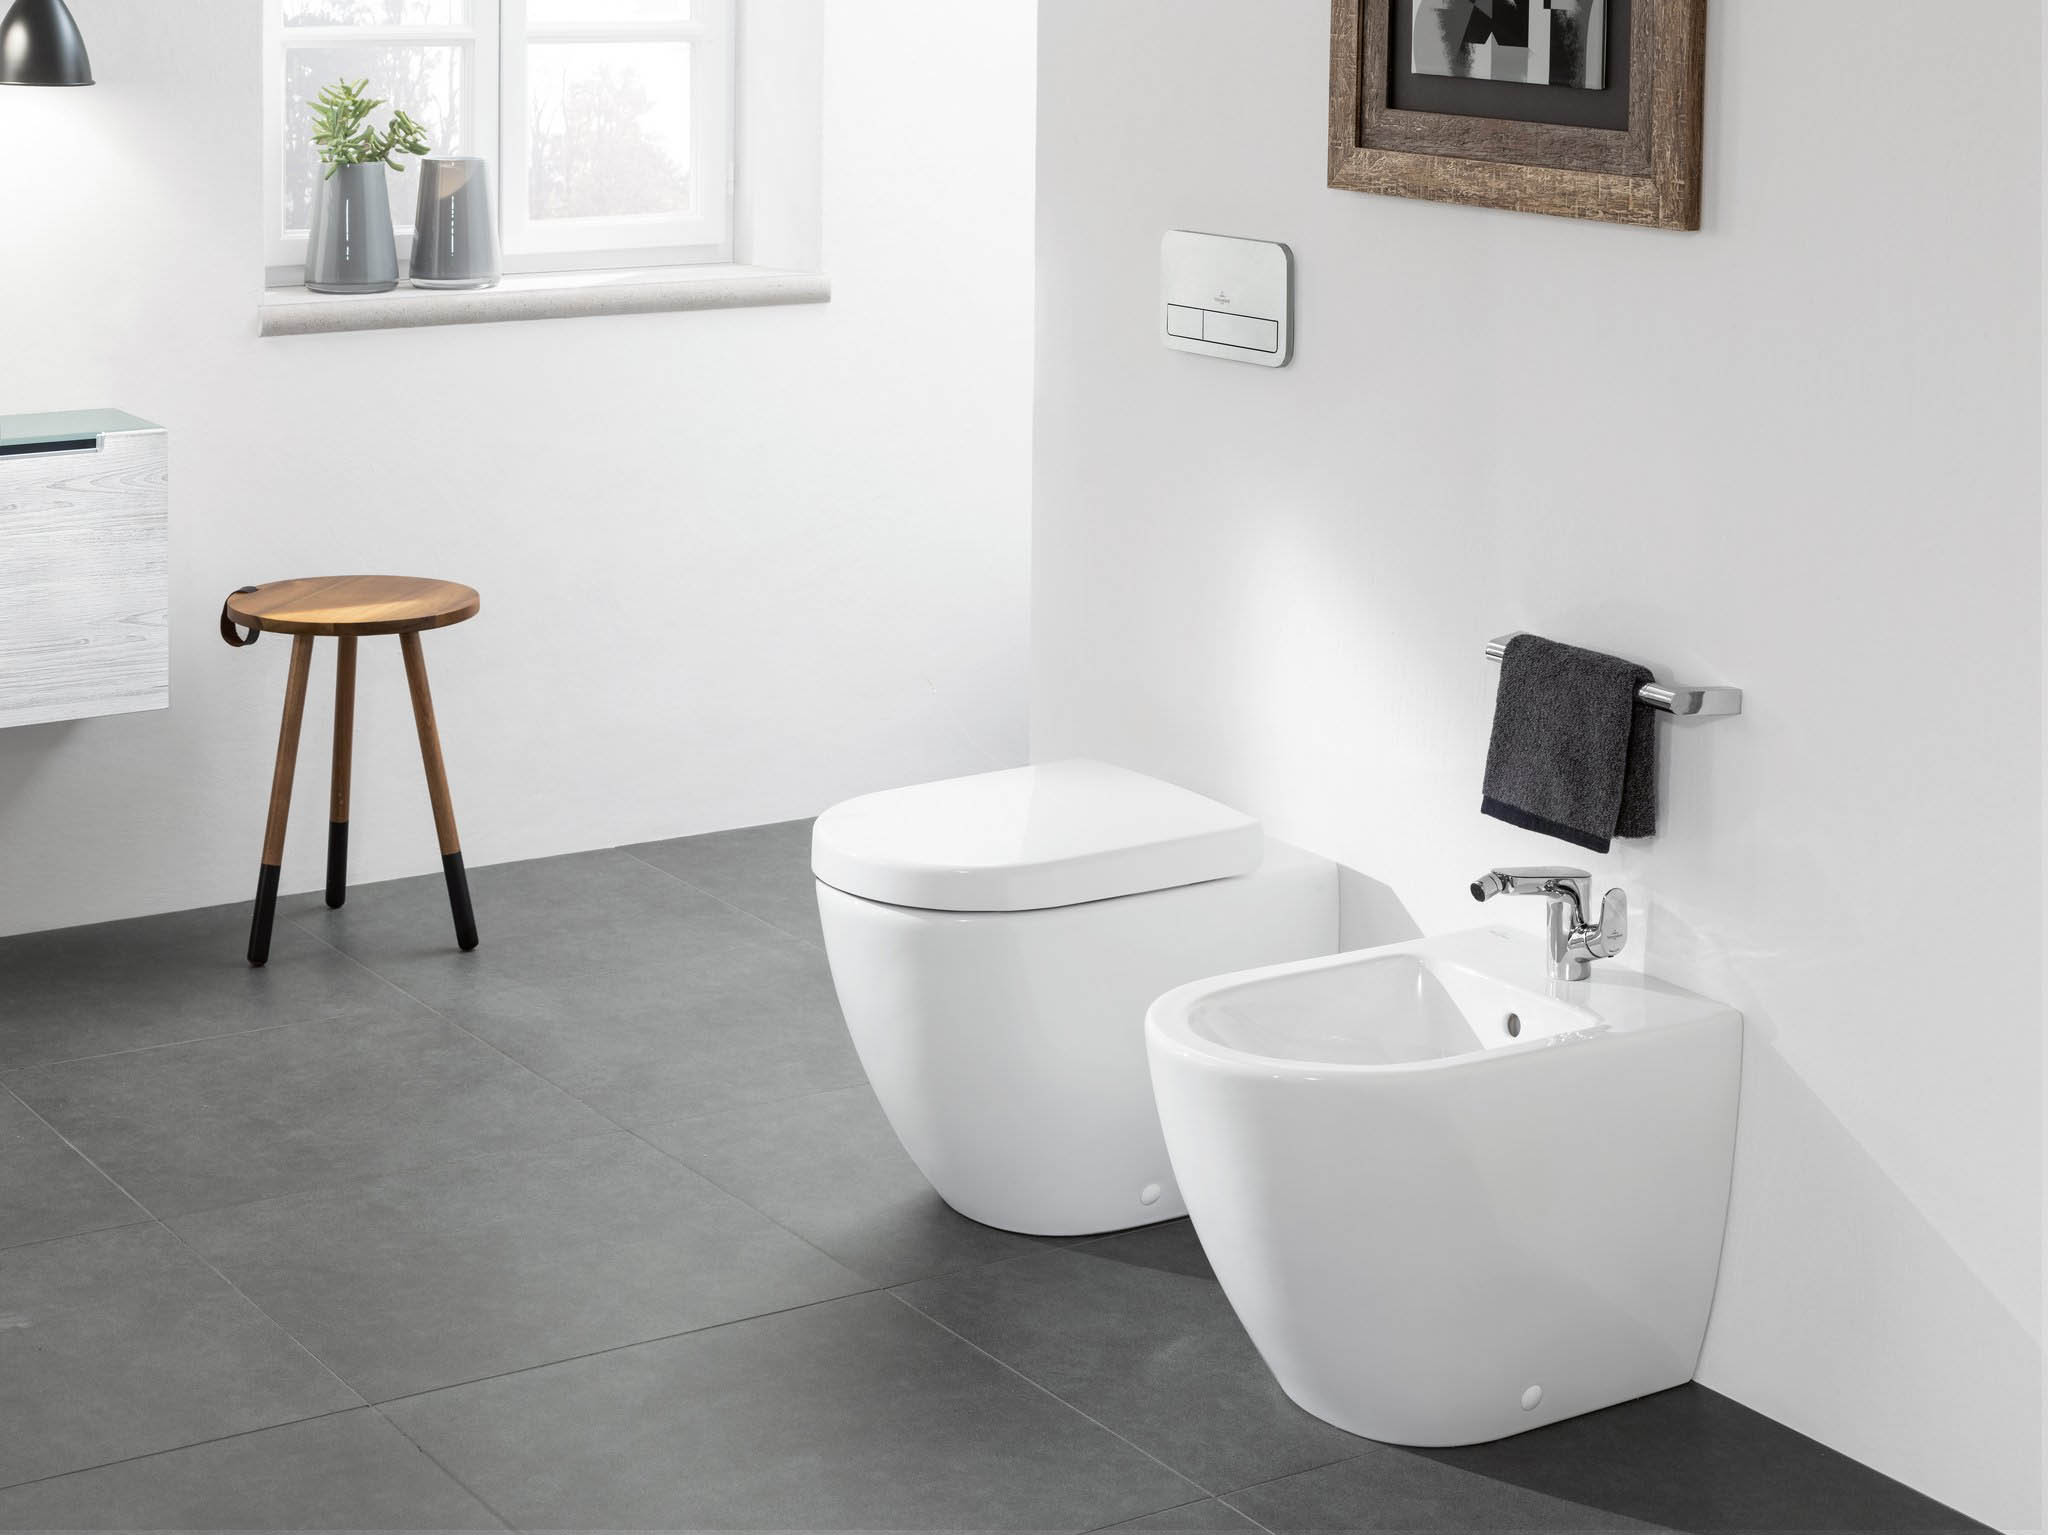 matching white cermaic floor mounted side by side toilet and bidet with electronic controls